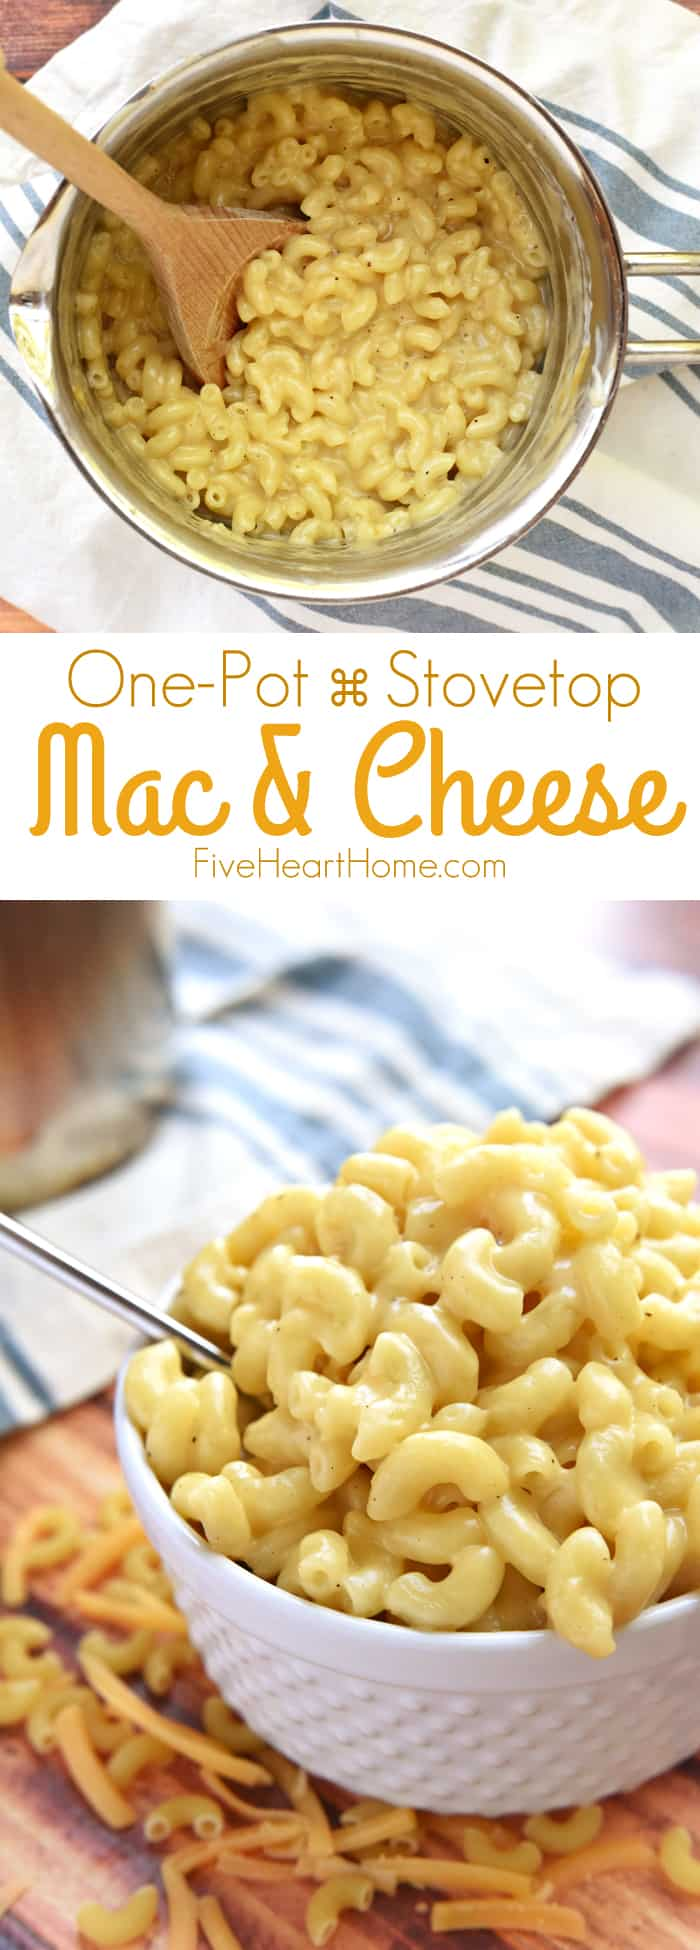 minute homemade mac and cheese recipe yummly minute homemade mac ...